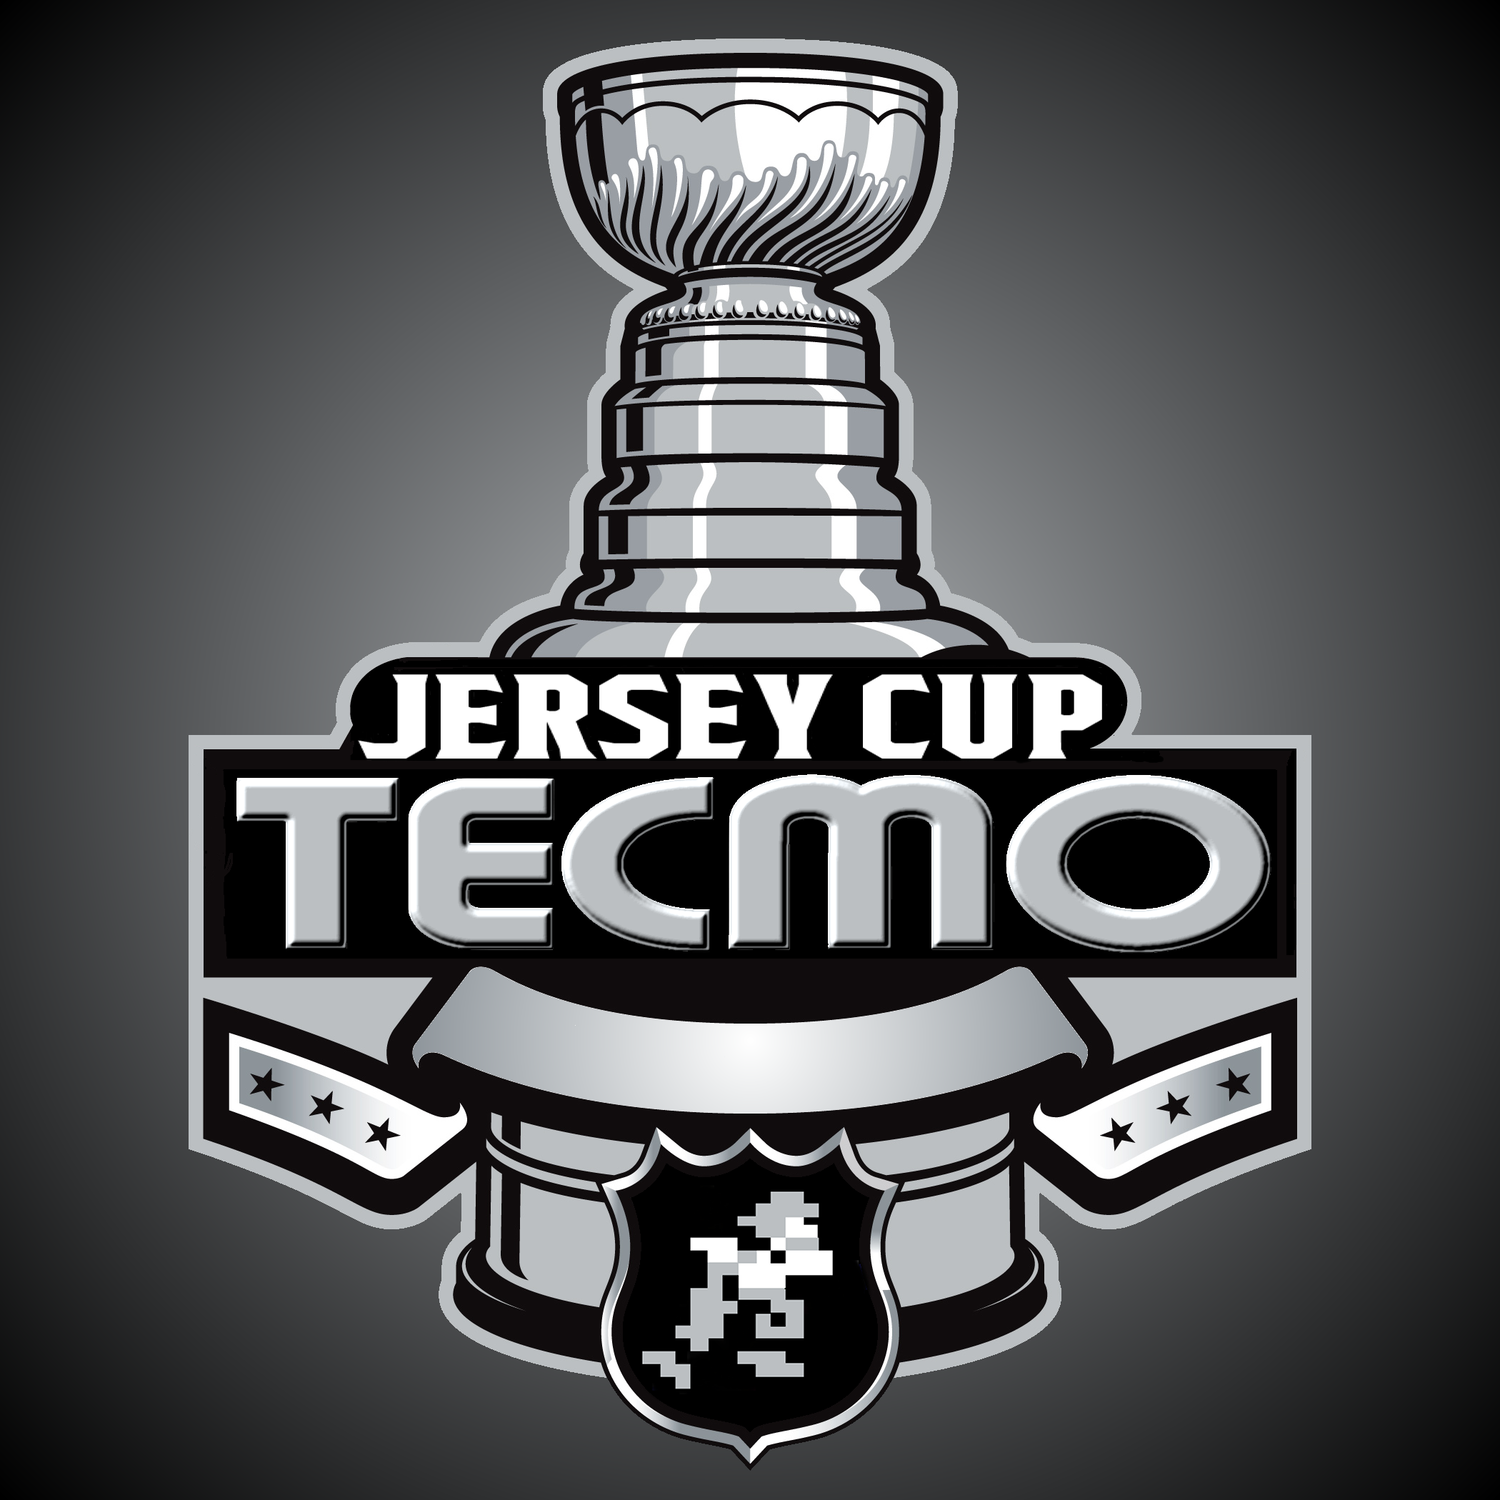 Jersey Cup Tecmo